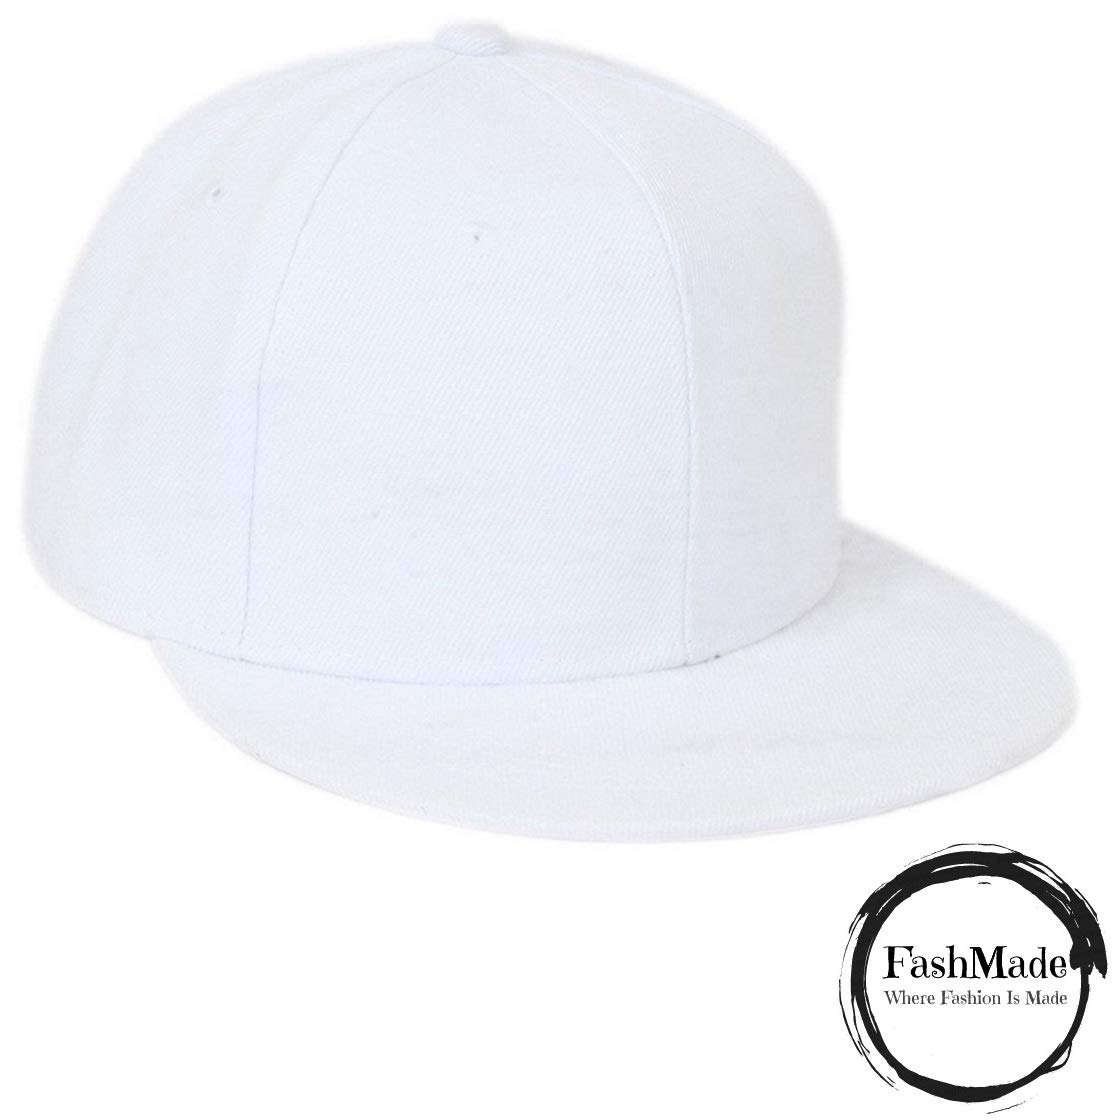 76f31a3d6ef FashMade Solid White Hiphop Snapback Cap for Men Boys   Women Girls   Amazon.in  Clothing   Accessories